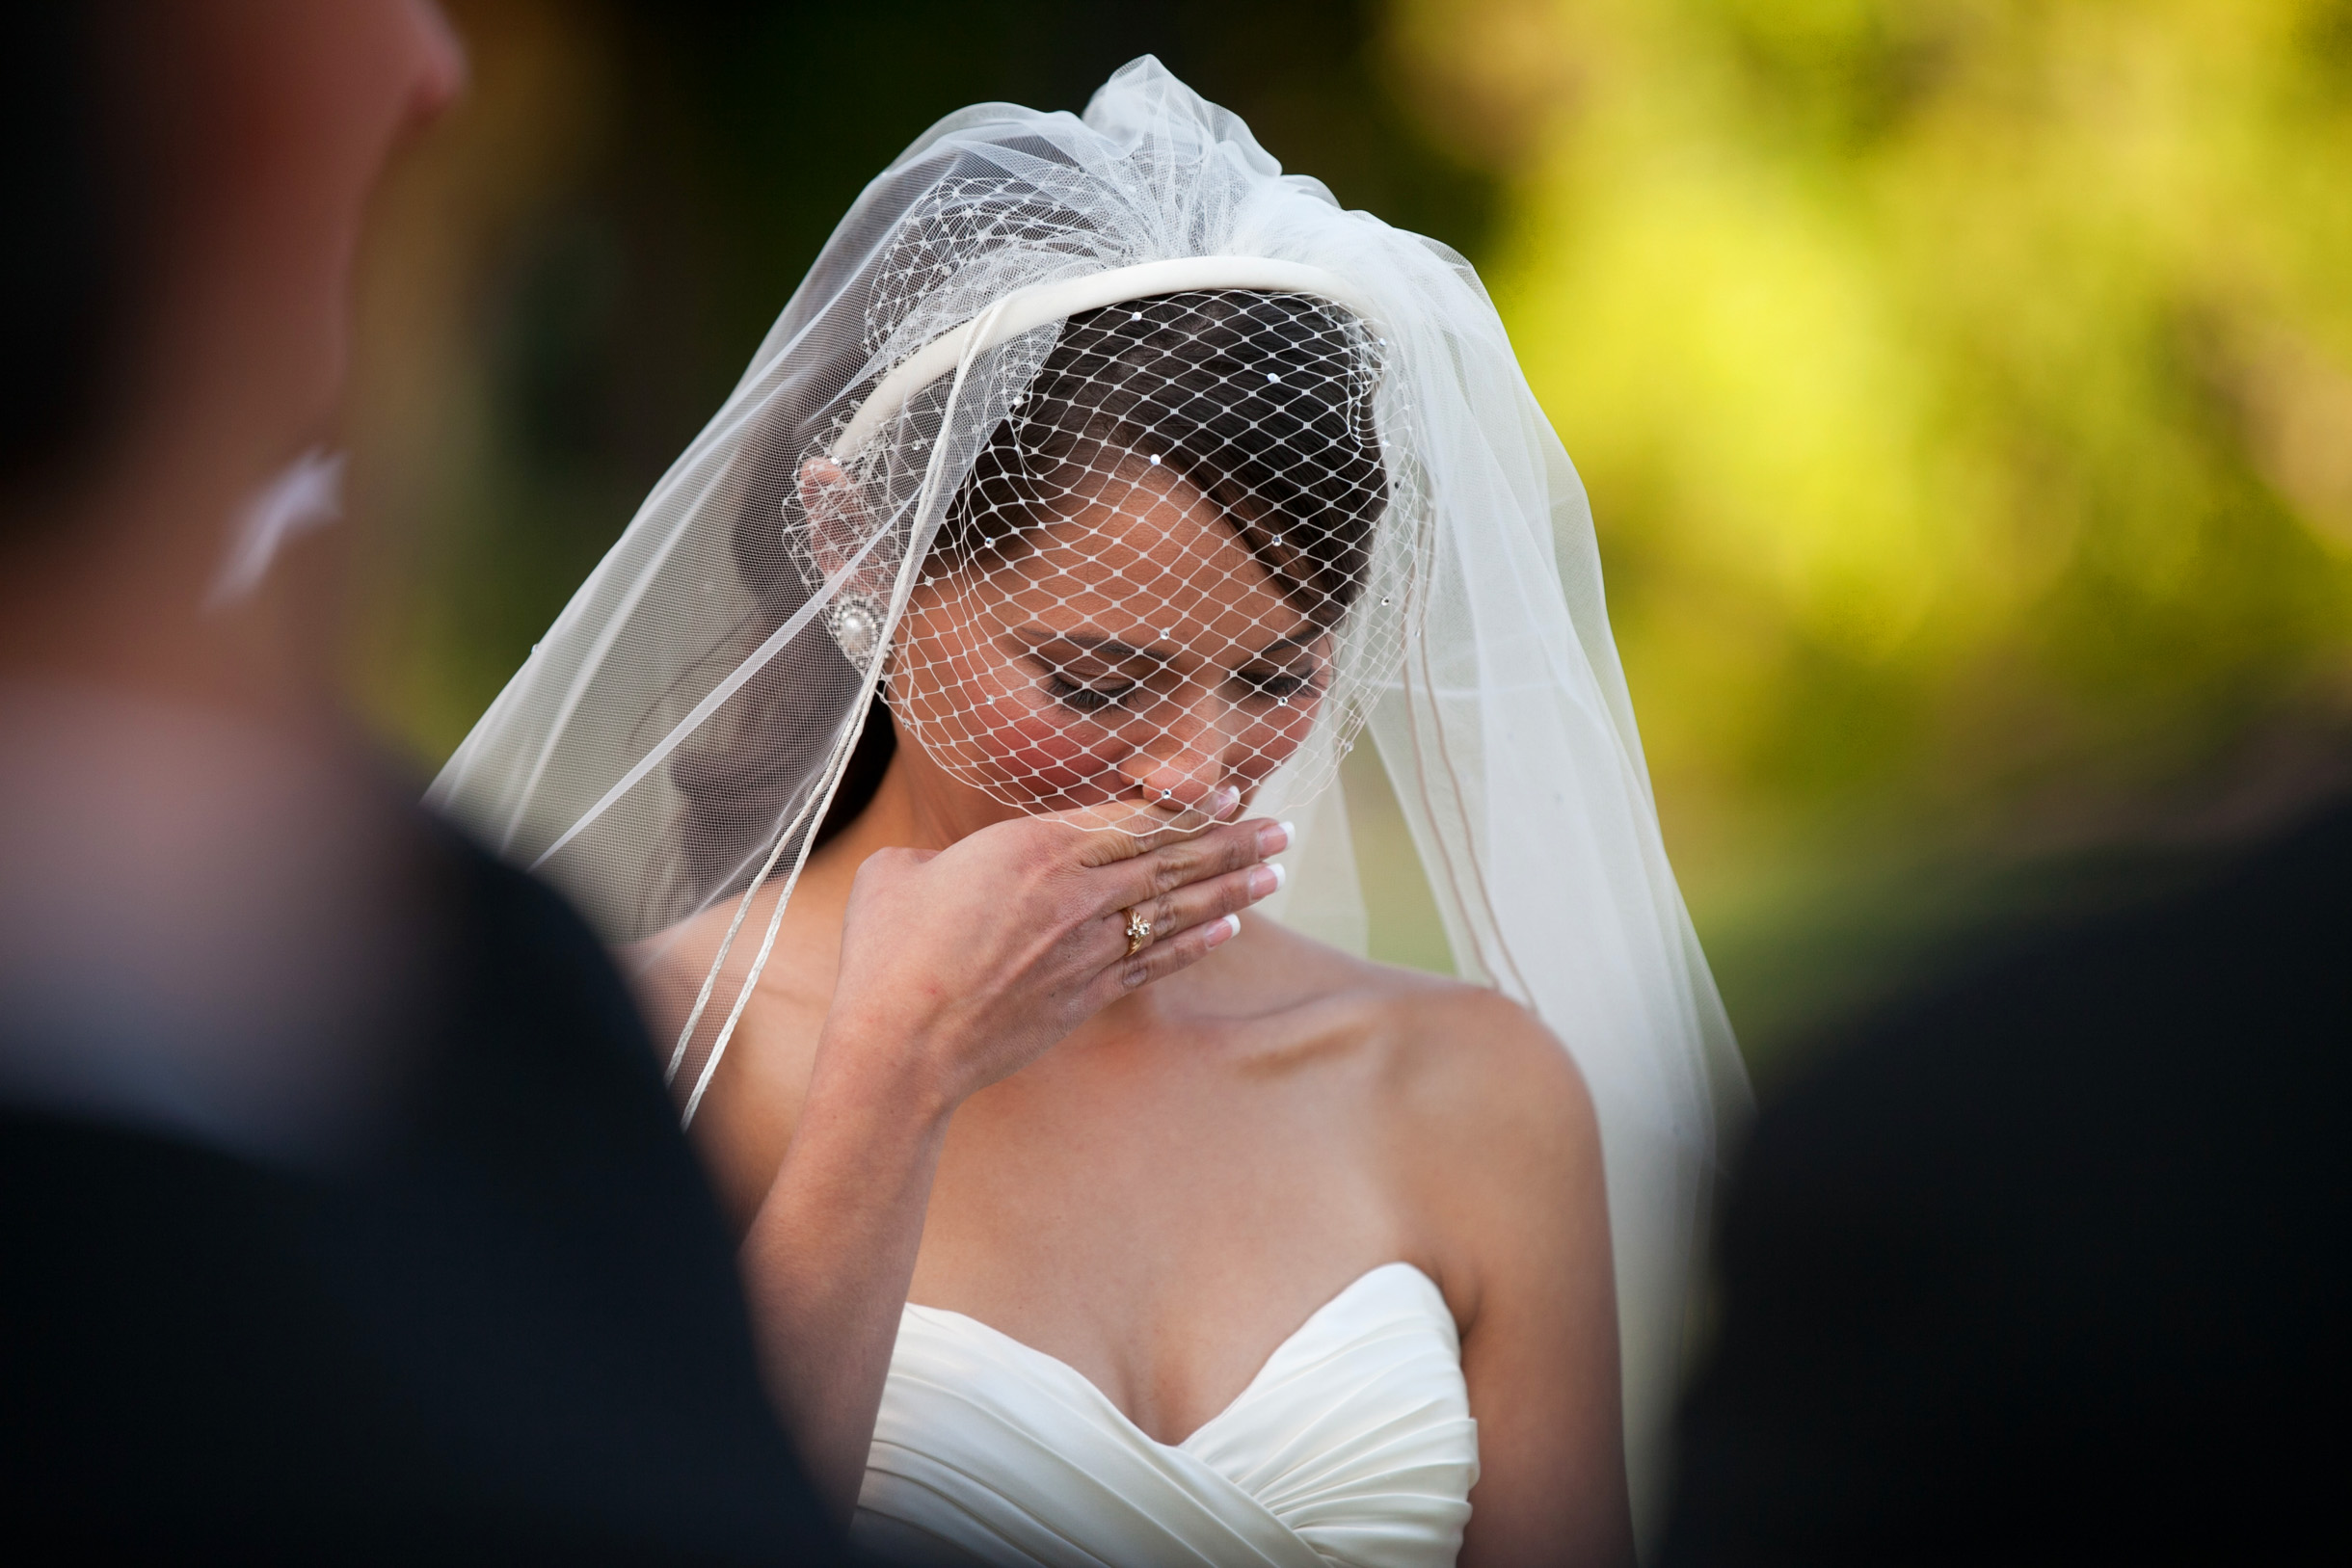 Bride crying tears of joy during her outdoor wedding ceremony